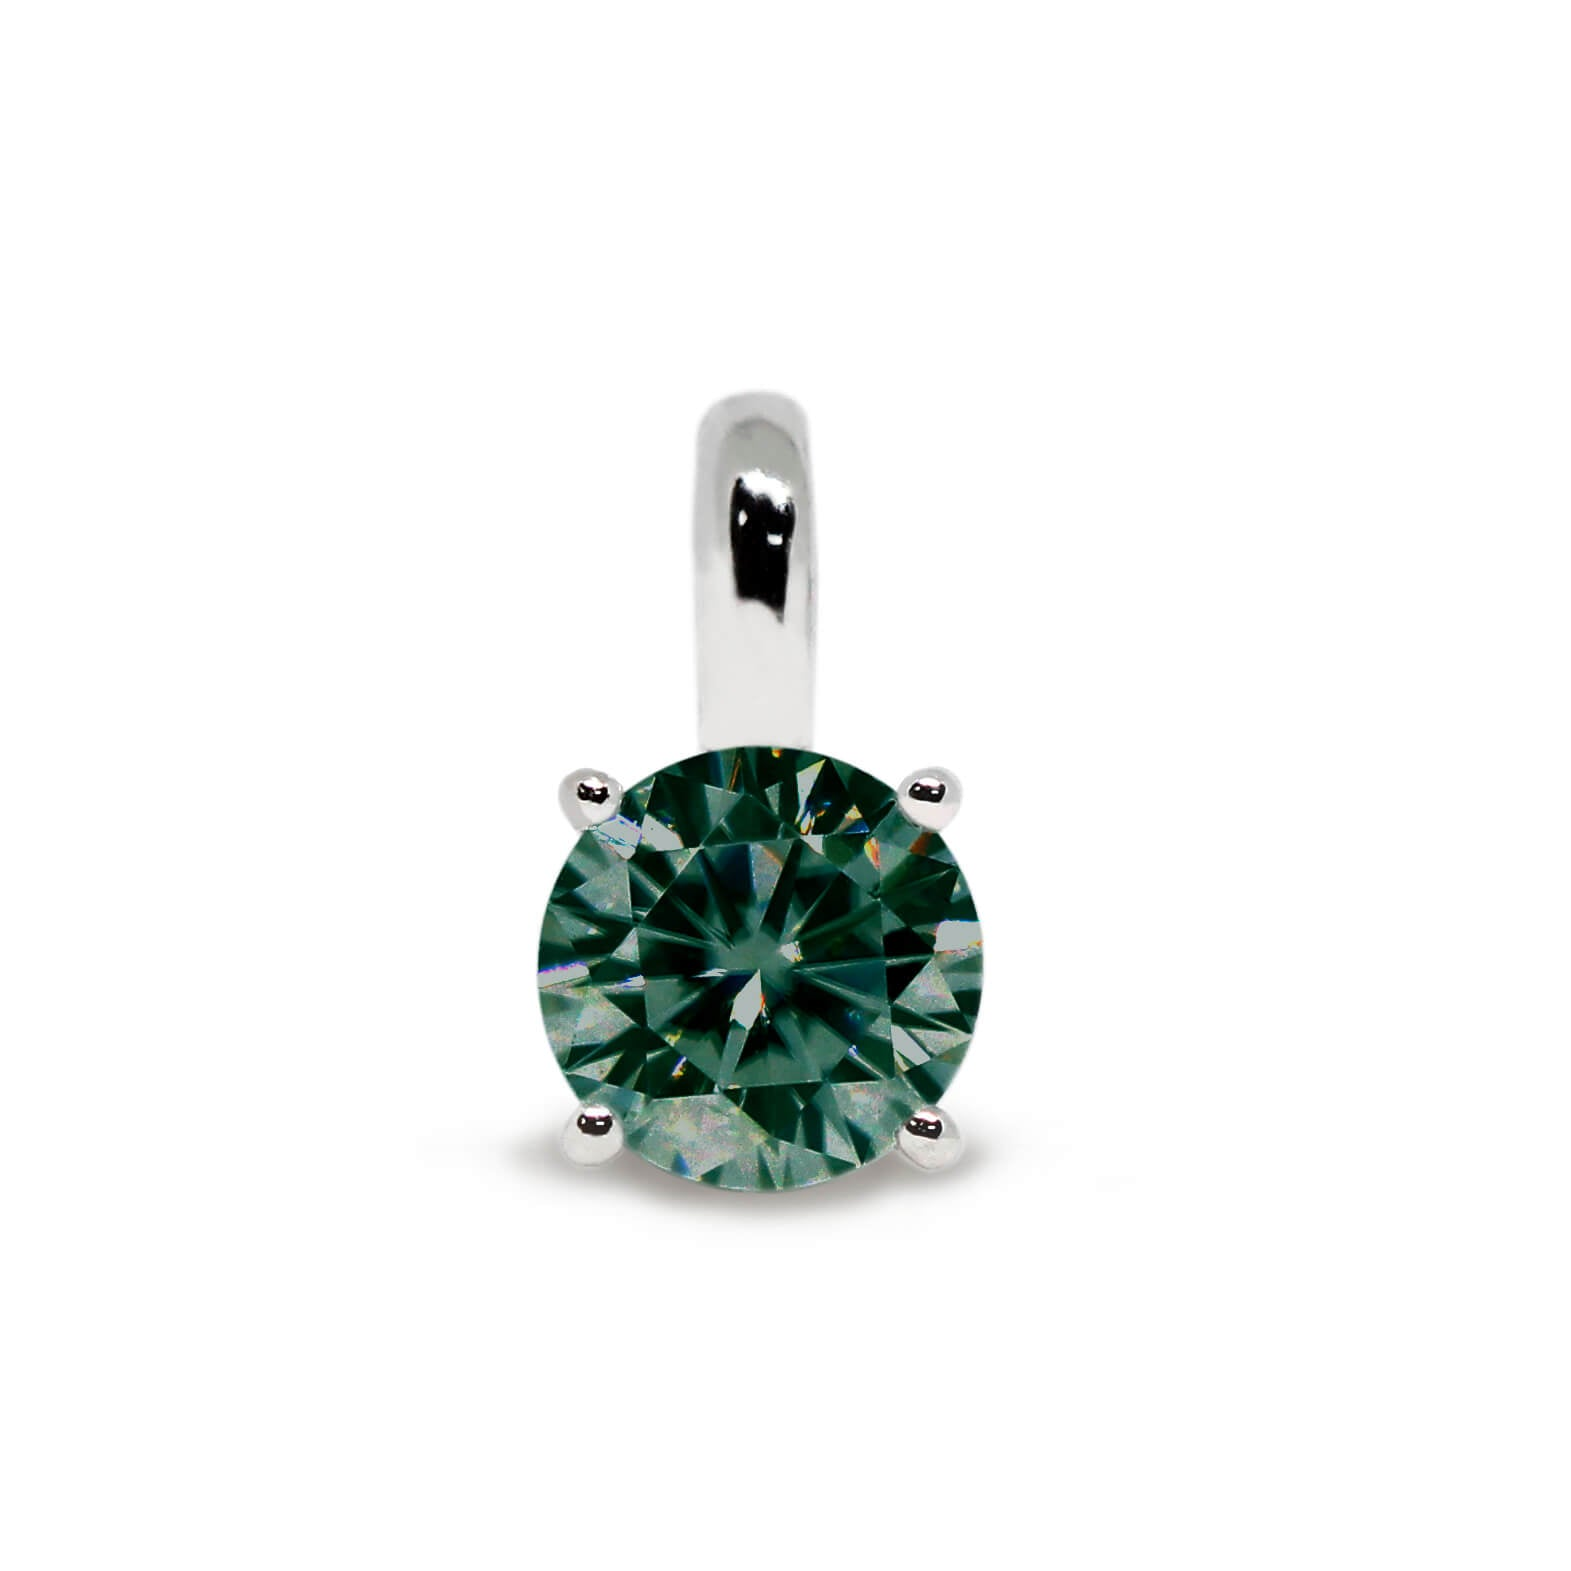 Dark Green Moissanite Round Solitaire 18K Gold Pendant